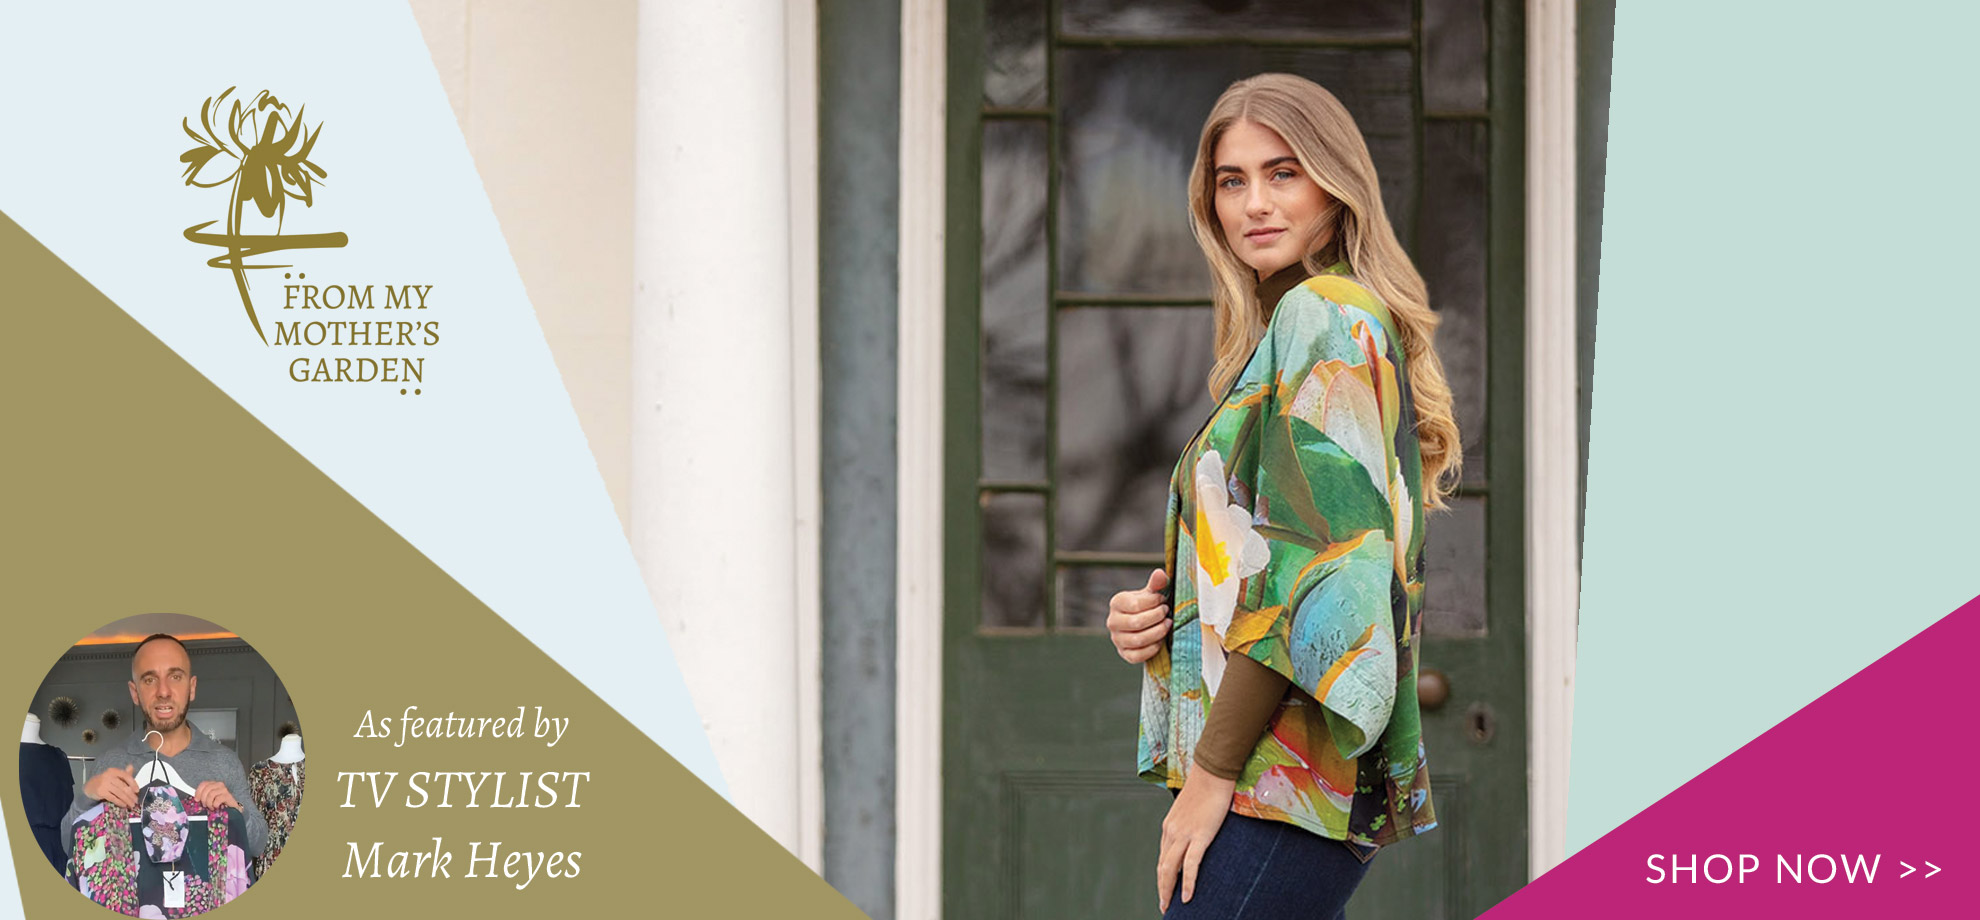 From My Mother's Garden fashion collection including kimonos and robes is now being stocked  by UK independent boutique colmershill.com